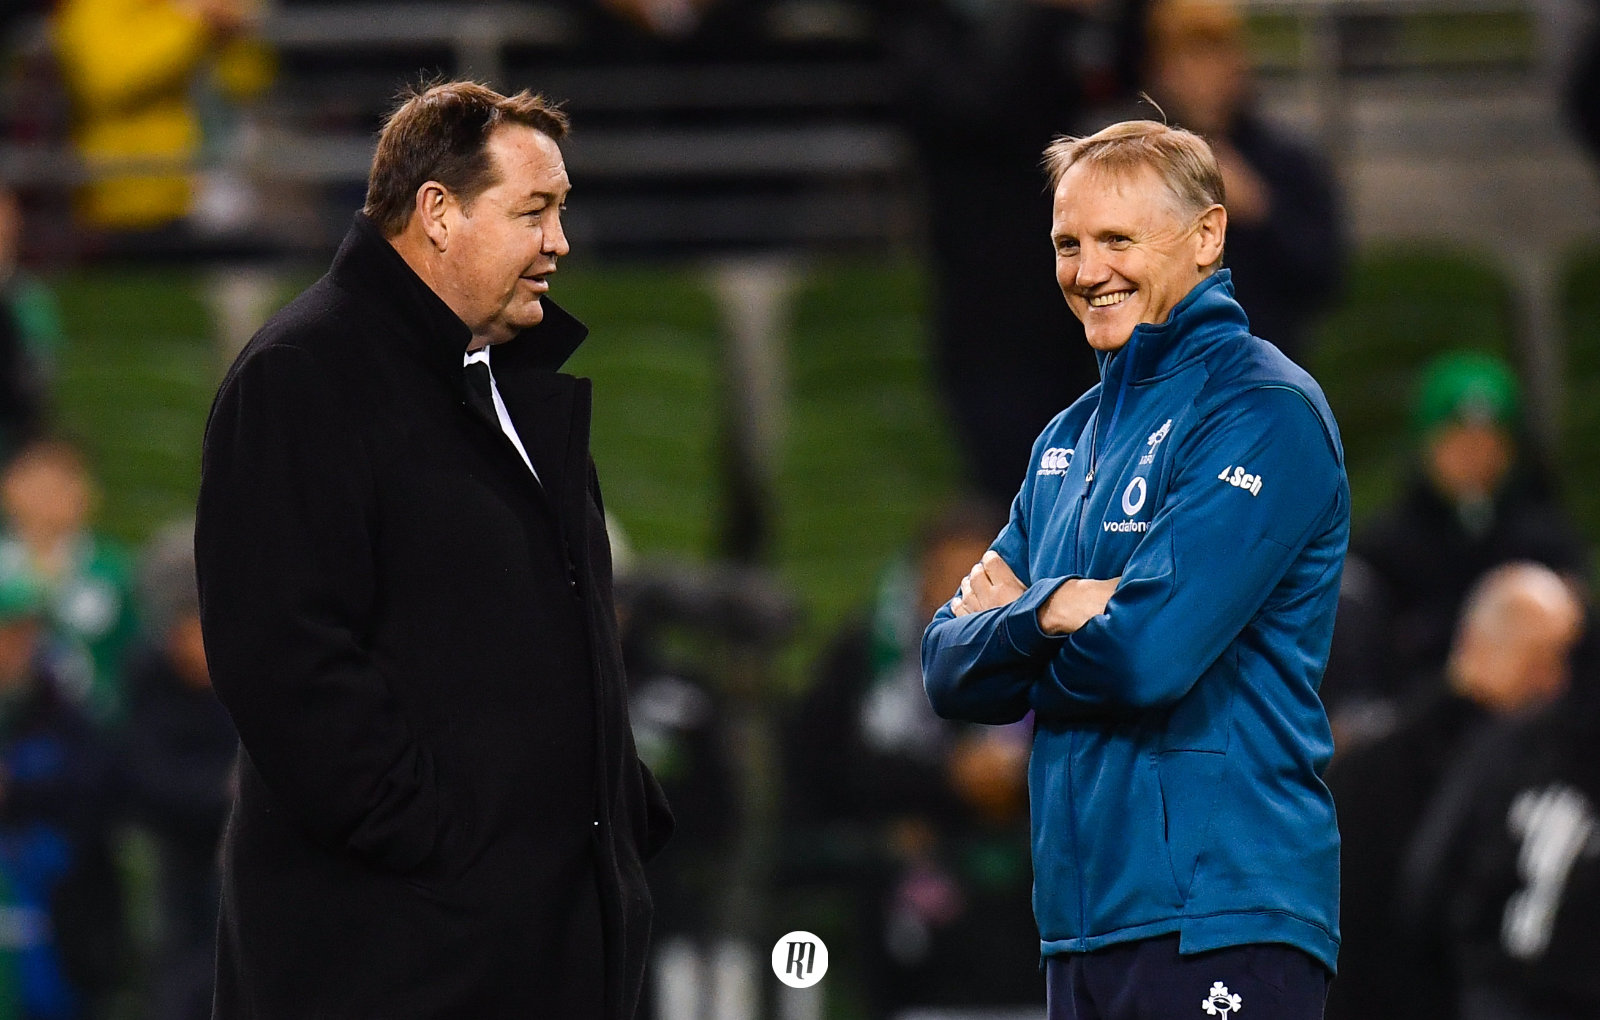 New Zealand vs Ireland: Power and playmakers, creaking set-pieces and angry talismans